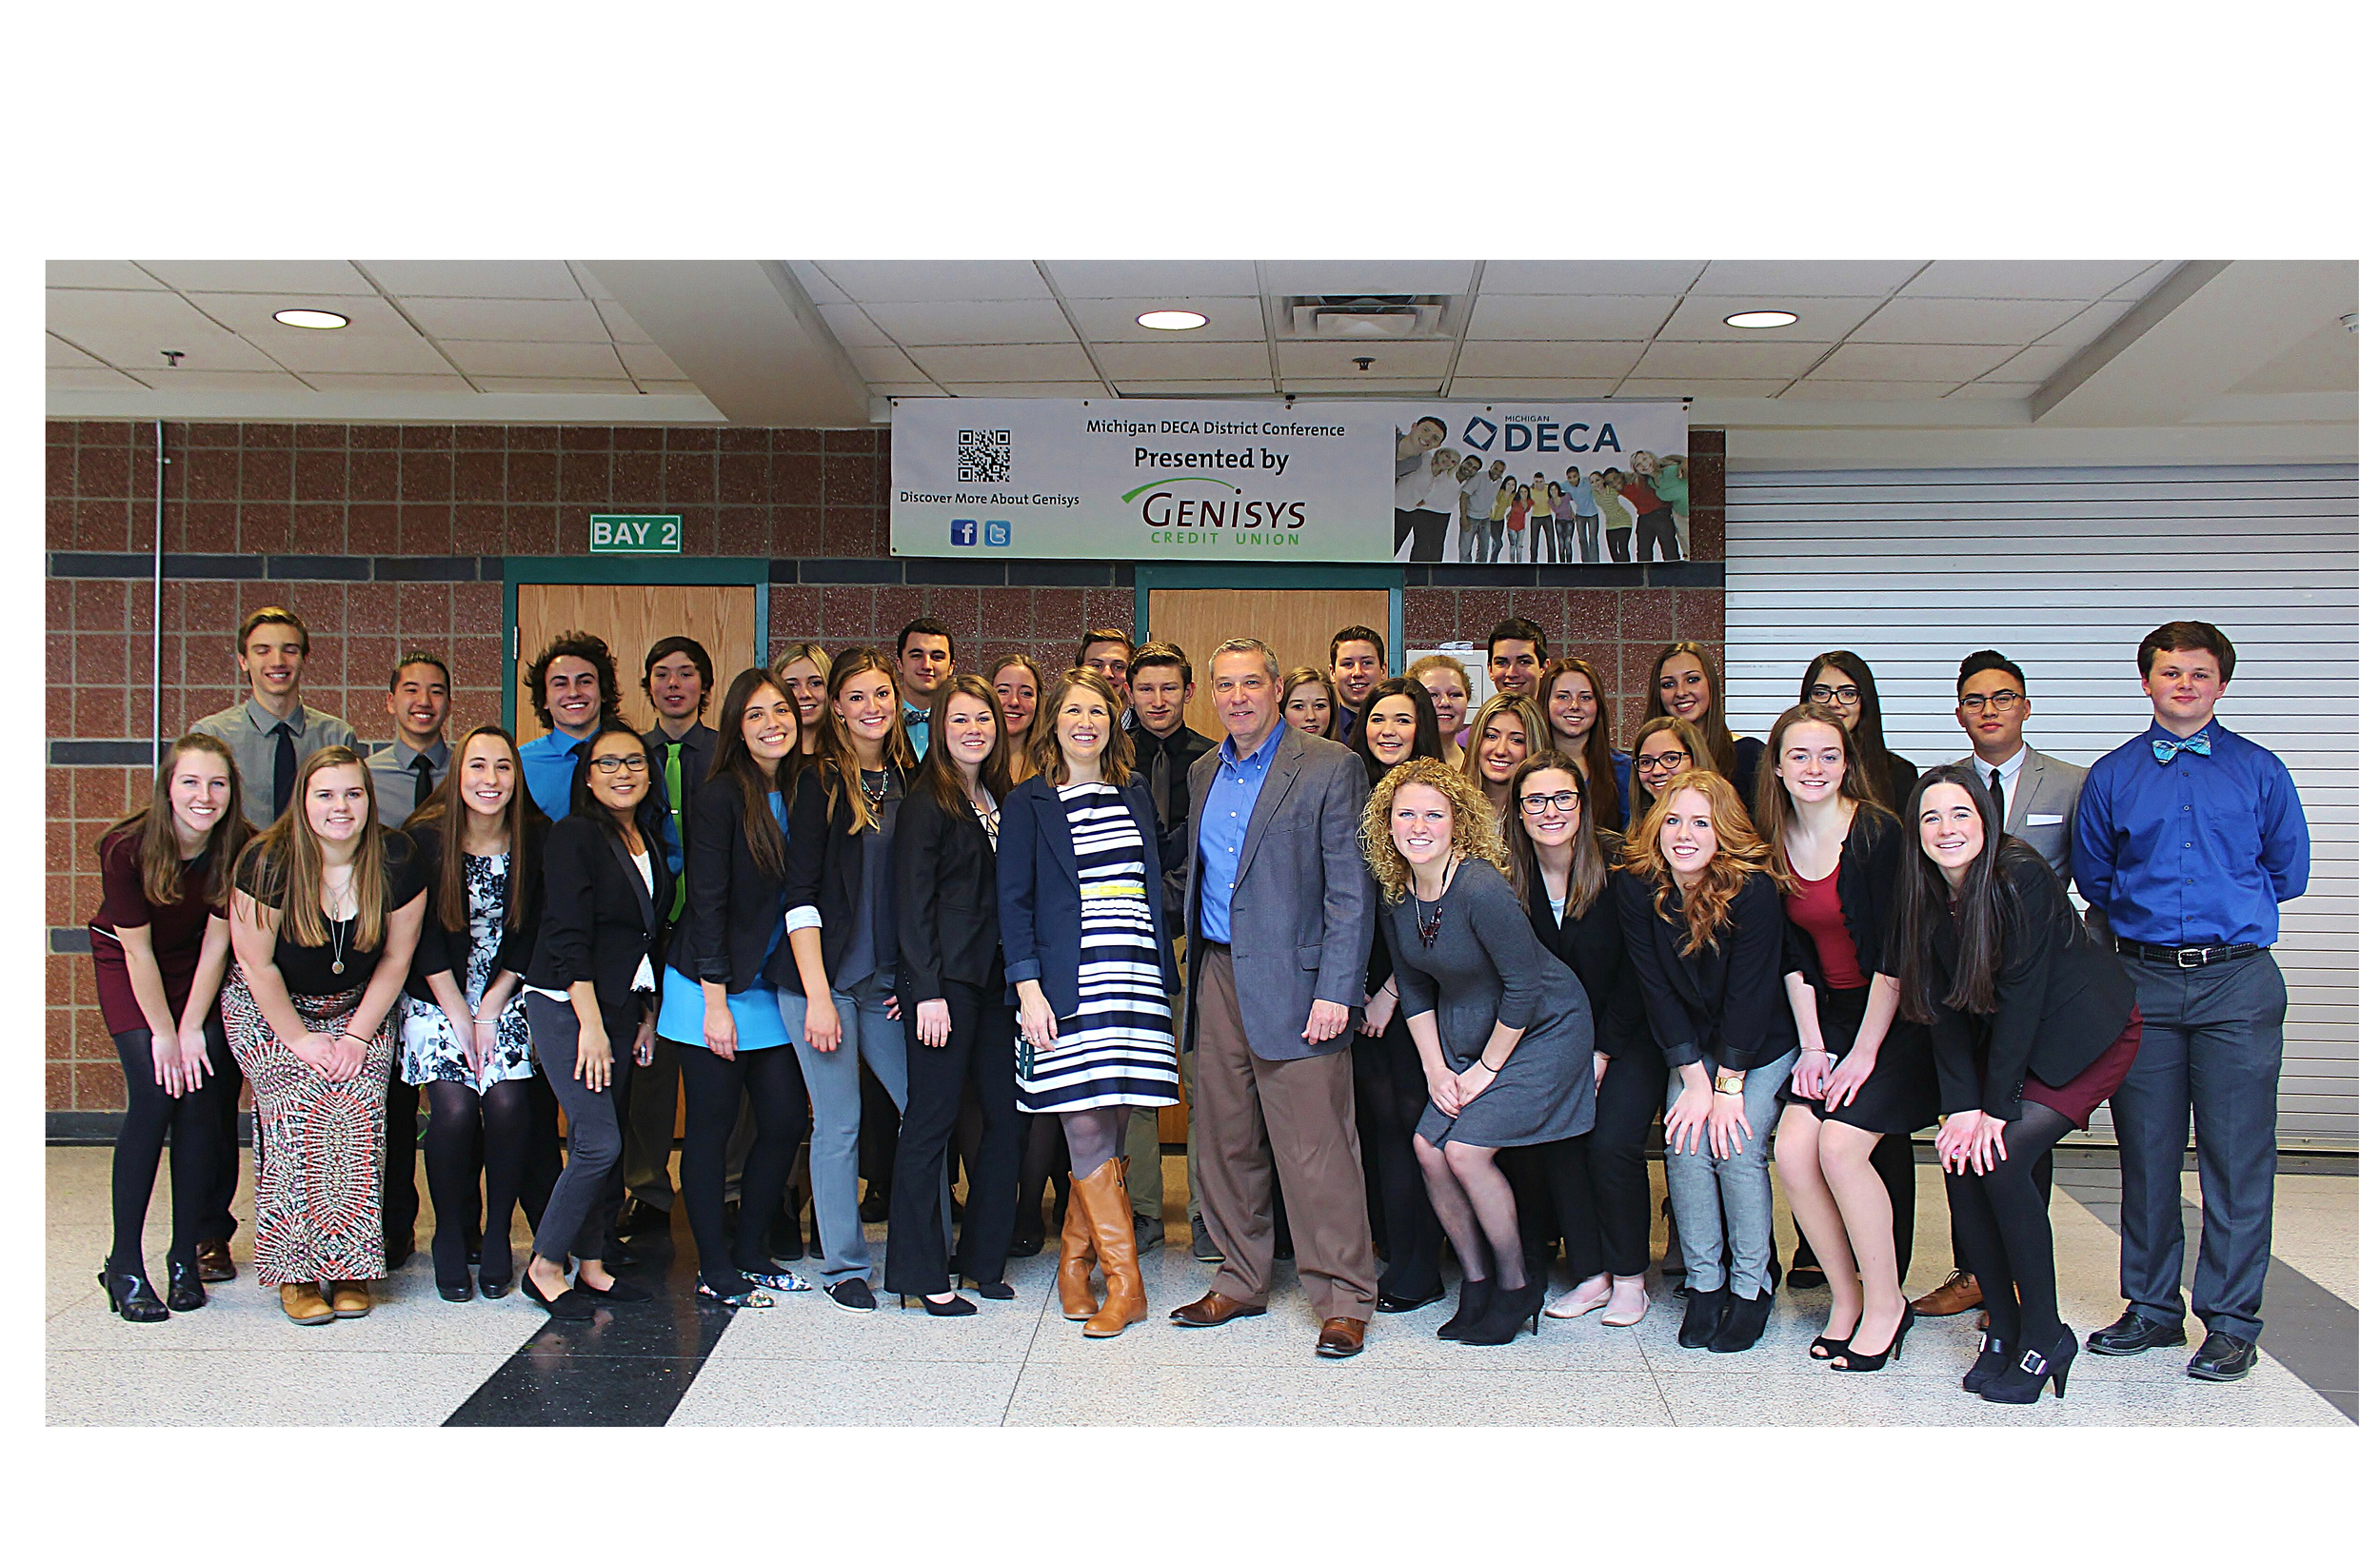 Above: Custom Threads & Sports, a long time local supplier of Lake Orion-branded apparel to school athletic programs and the community, recently provided a grant to the Lake Orion High School DECA team of students interested in sales and marketing careers. According to Custom Threads' President Mark McCord, the donation was made in recognition of the successful partnership between his business and the school district to provide goods for the high school's student run store and Lake Orion's web based spirit wear outlet.  Pictured, DECA Advisor Julia Dalrymple and Mark McCord, along with the students who competed in the recent DECA regional competition at Lake Orion High School. Photo Credit: Joe St. Henry.